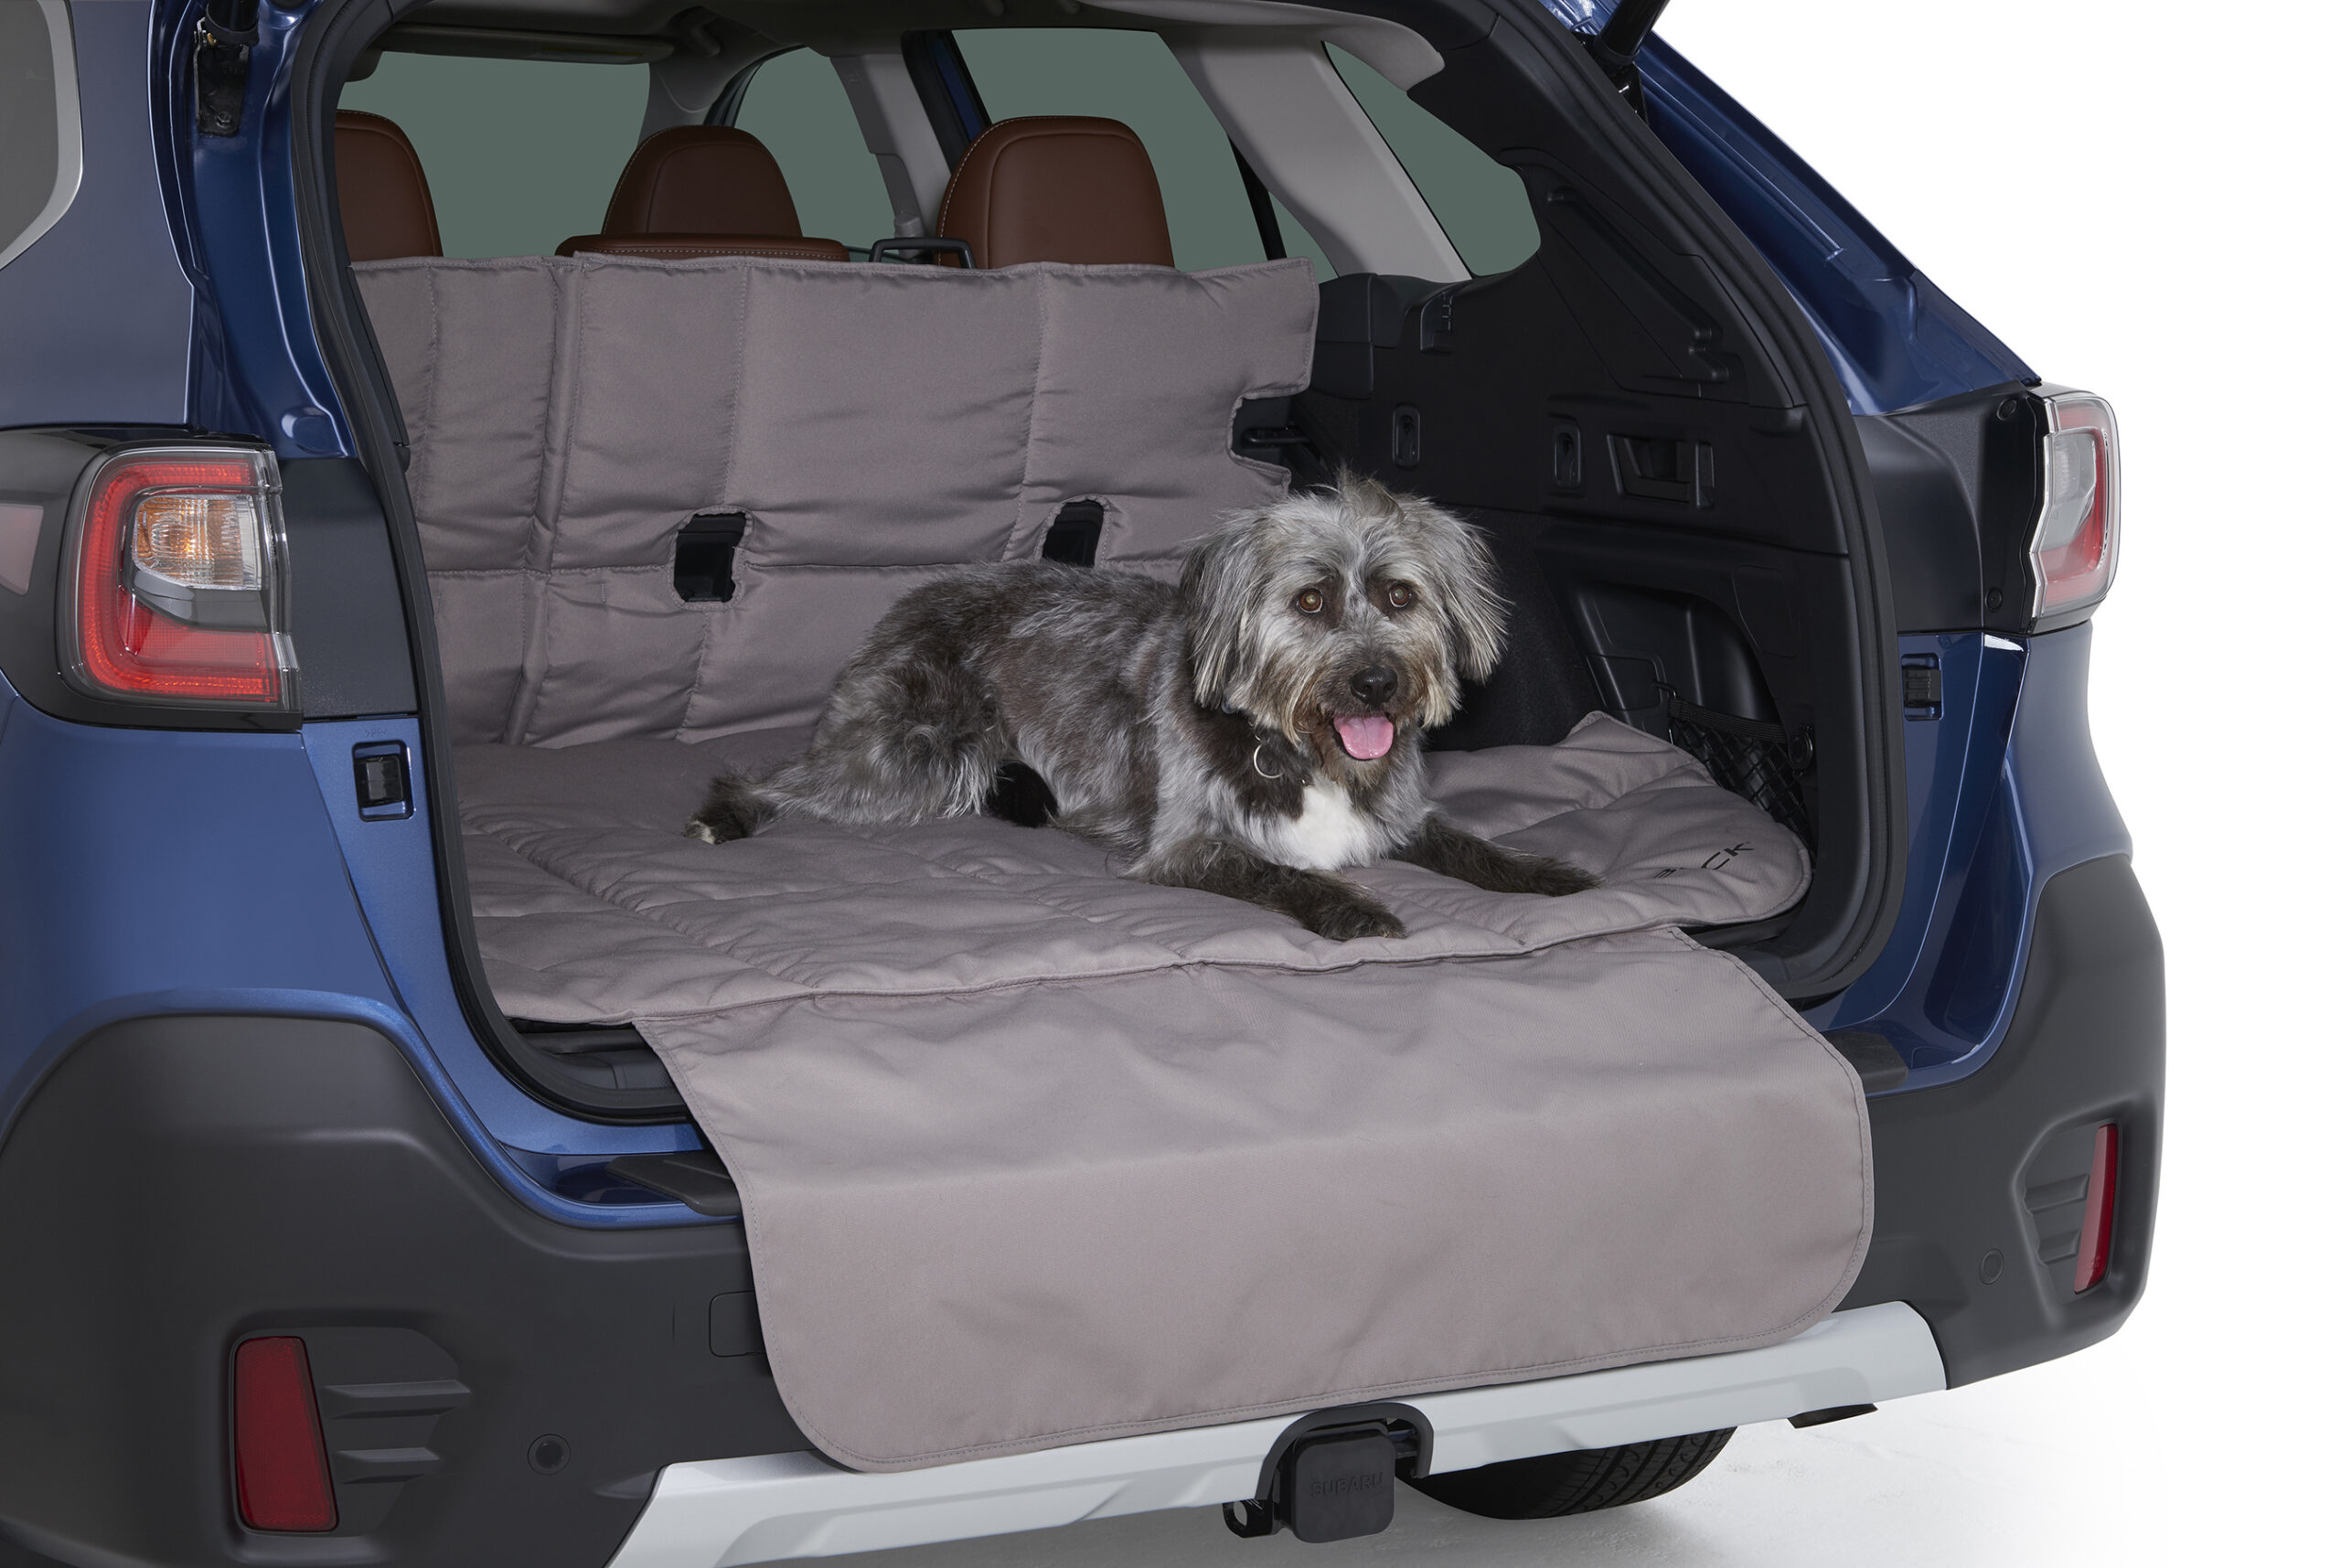 Subaru pet accessories, with a dog on a cargo-area mat.